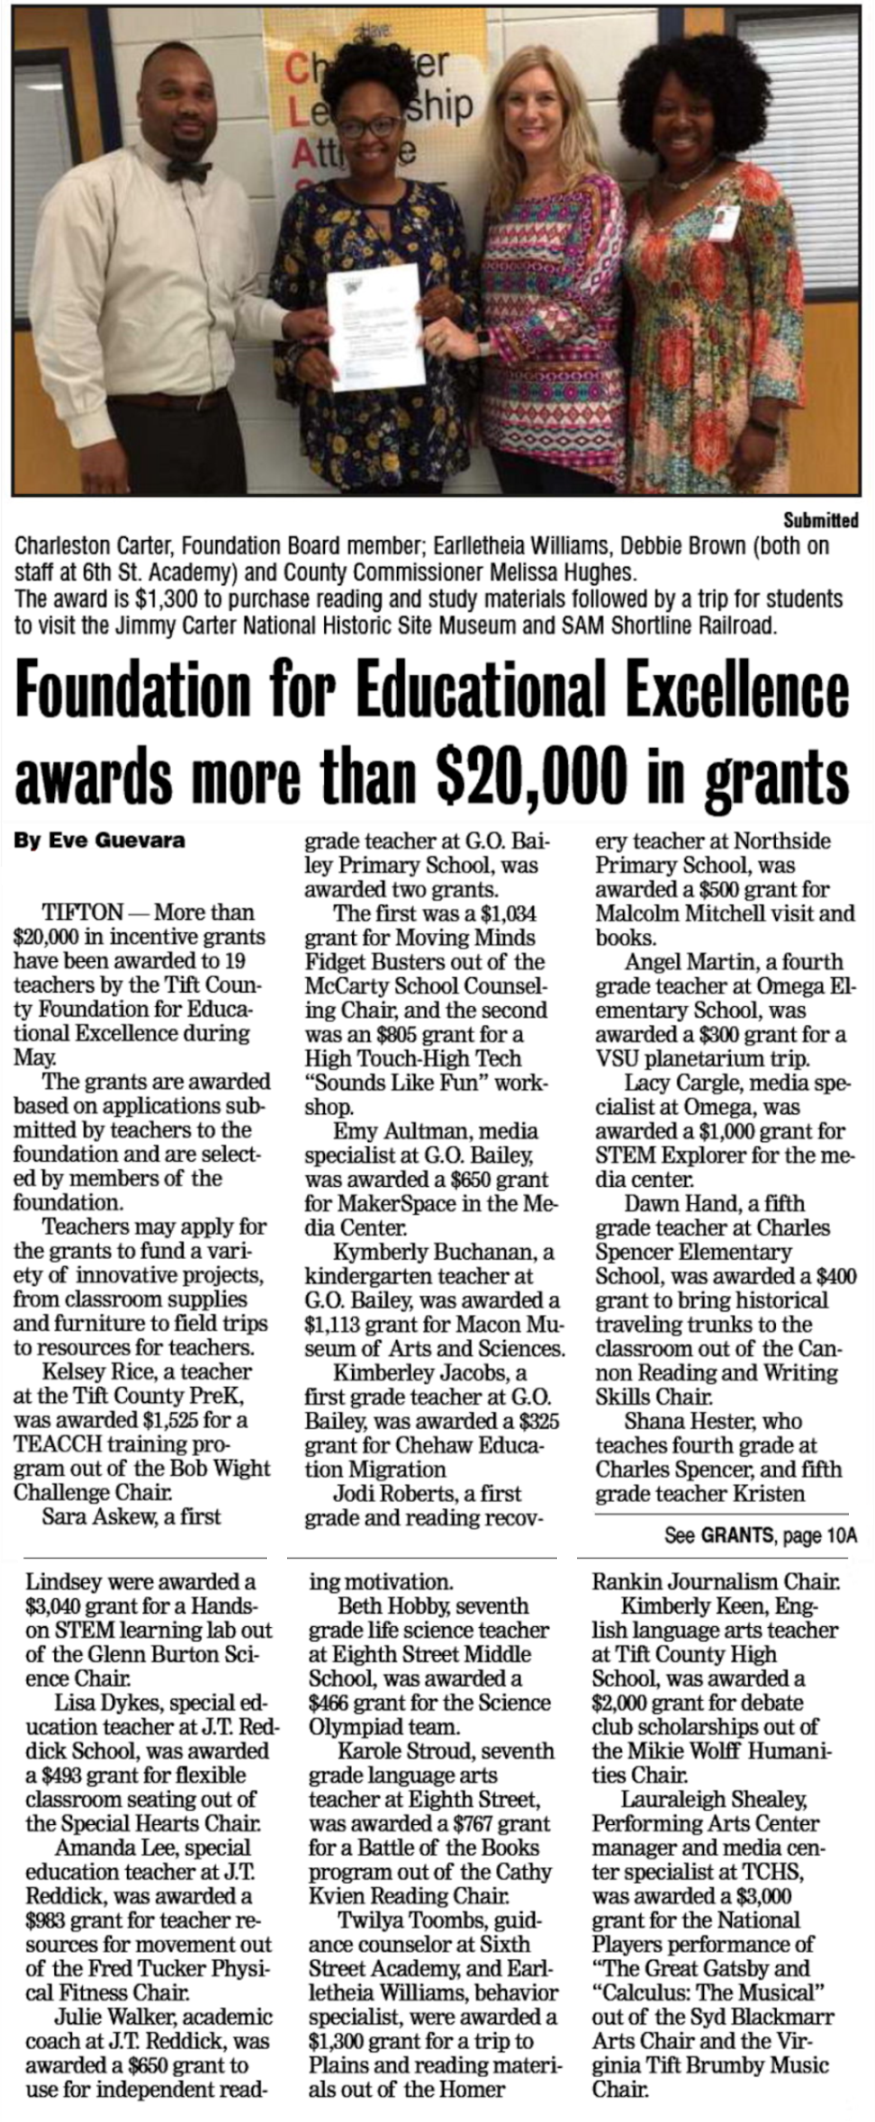 Foundation Awards $20,000